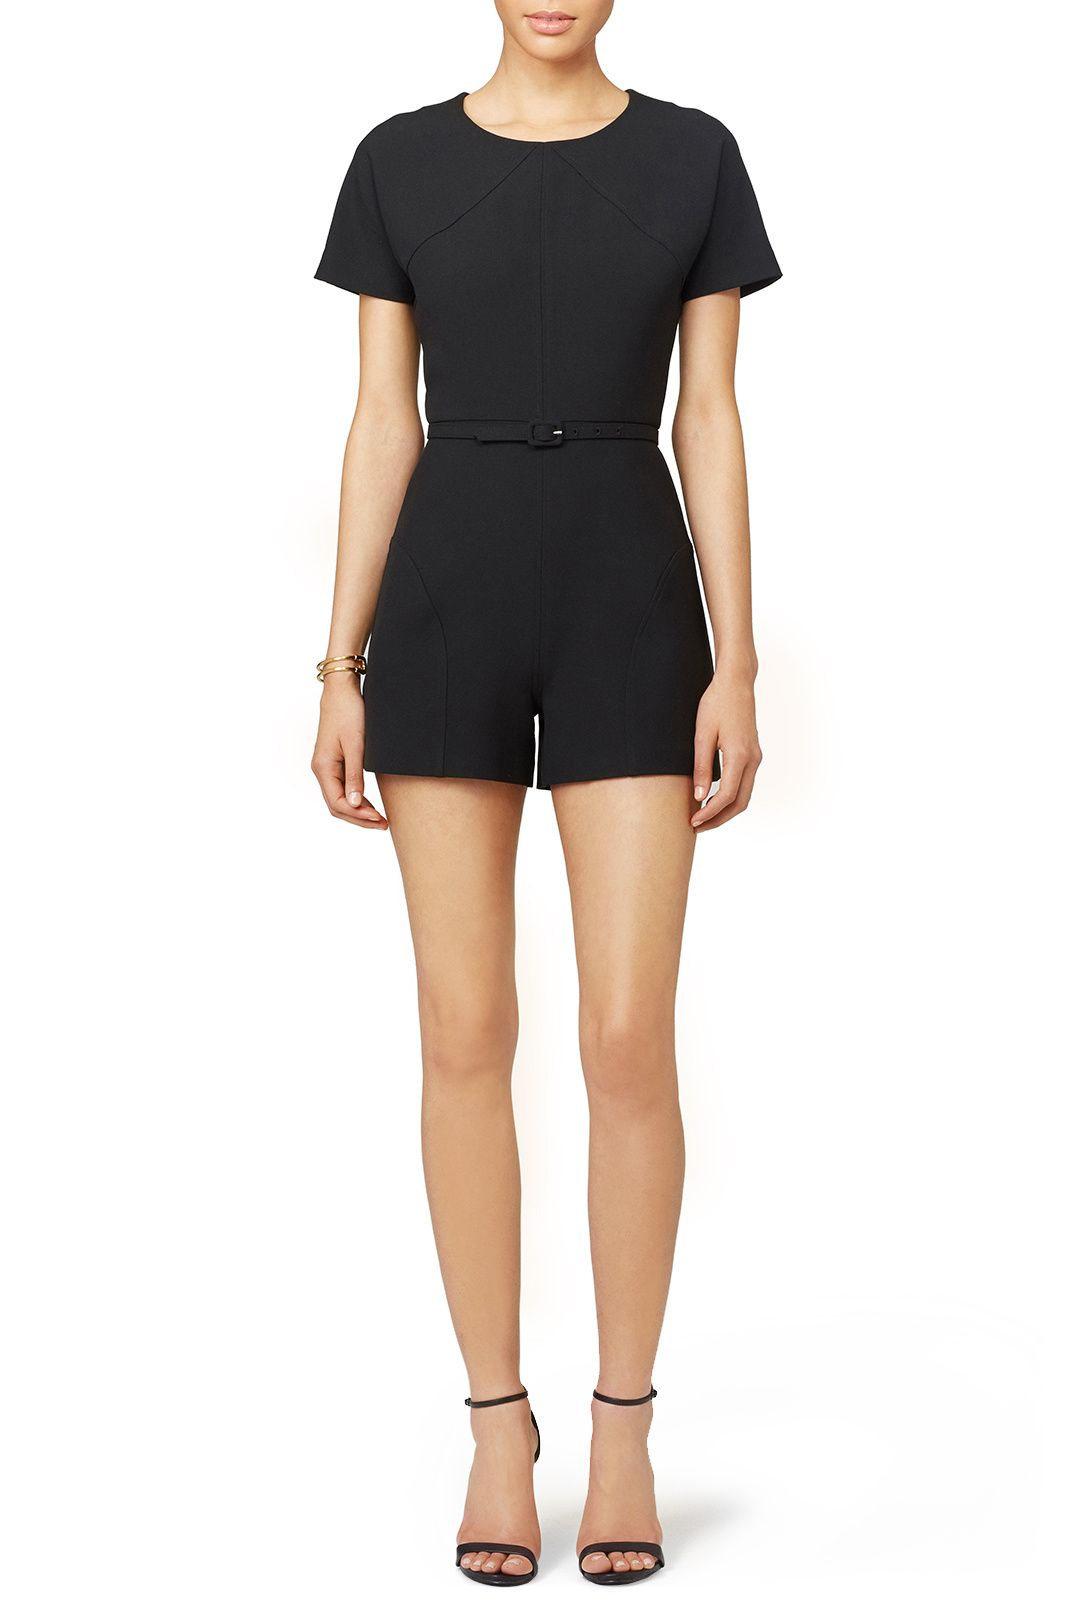 f1584a3bfa8e Rent Delaney Romper by Rachel Zoe for  75 only at Rent the Runway.